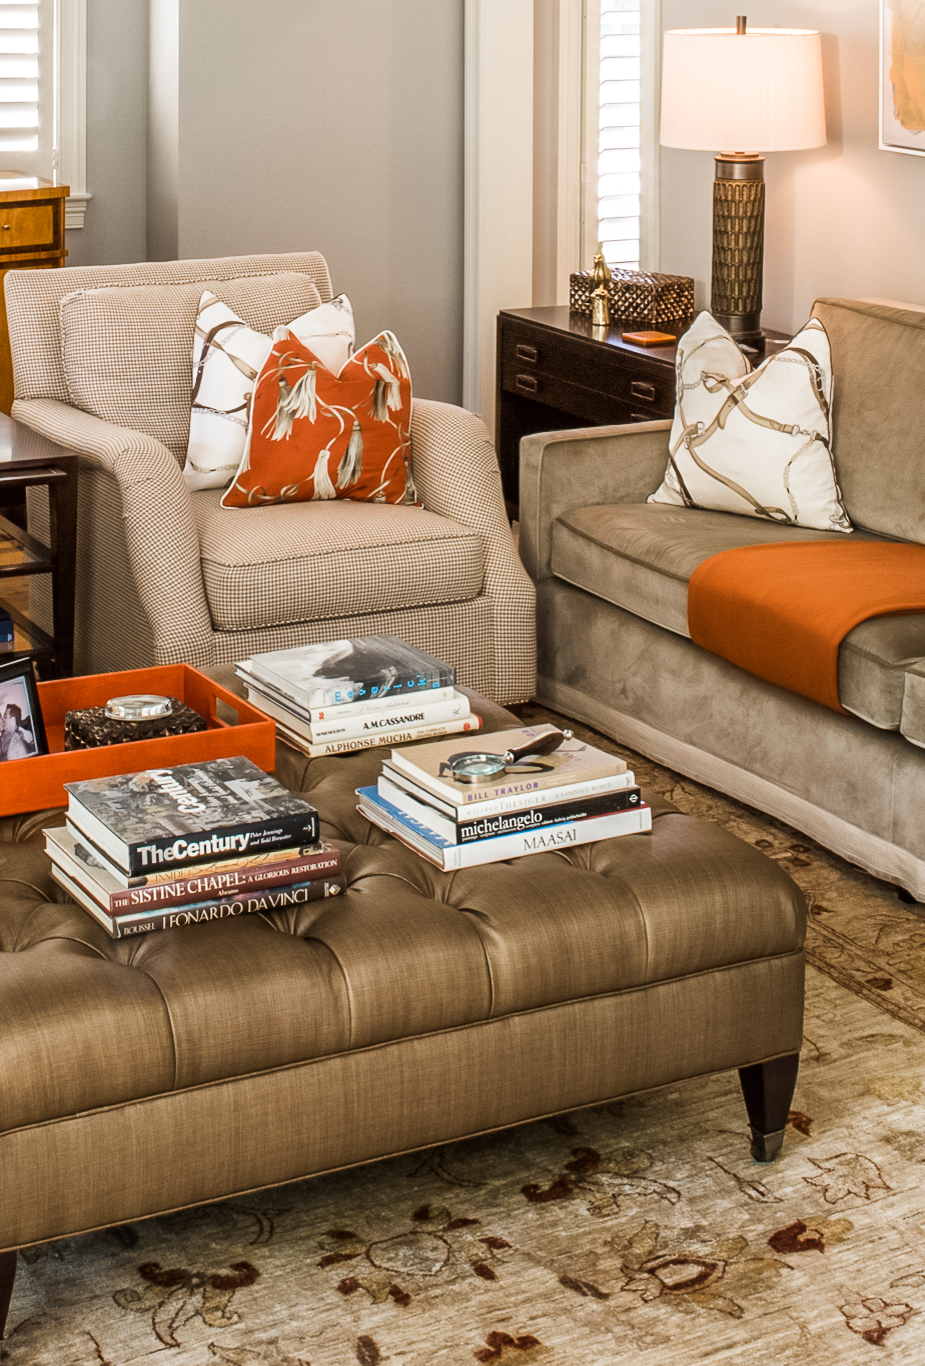 living room furniture with chairs, sofa, lamps ottoman